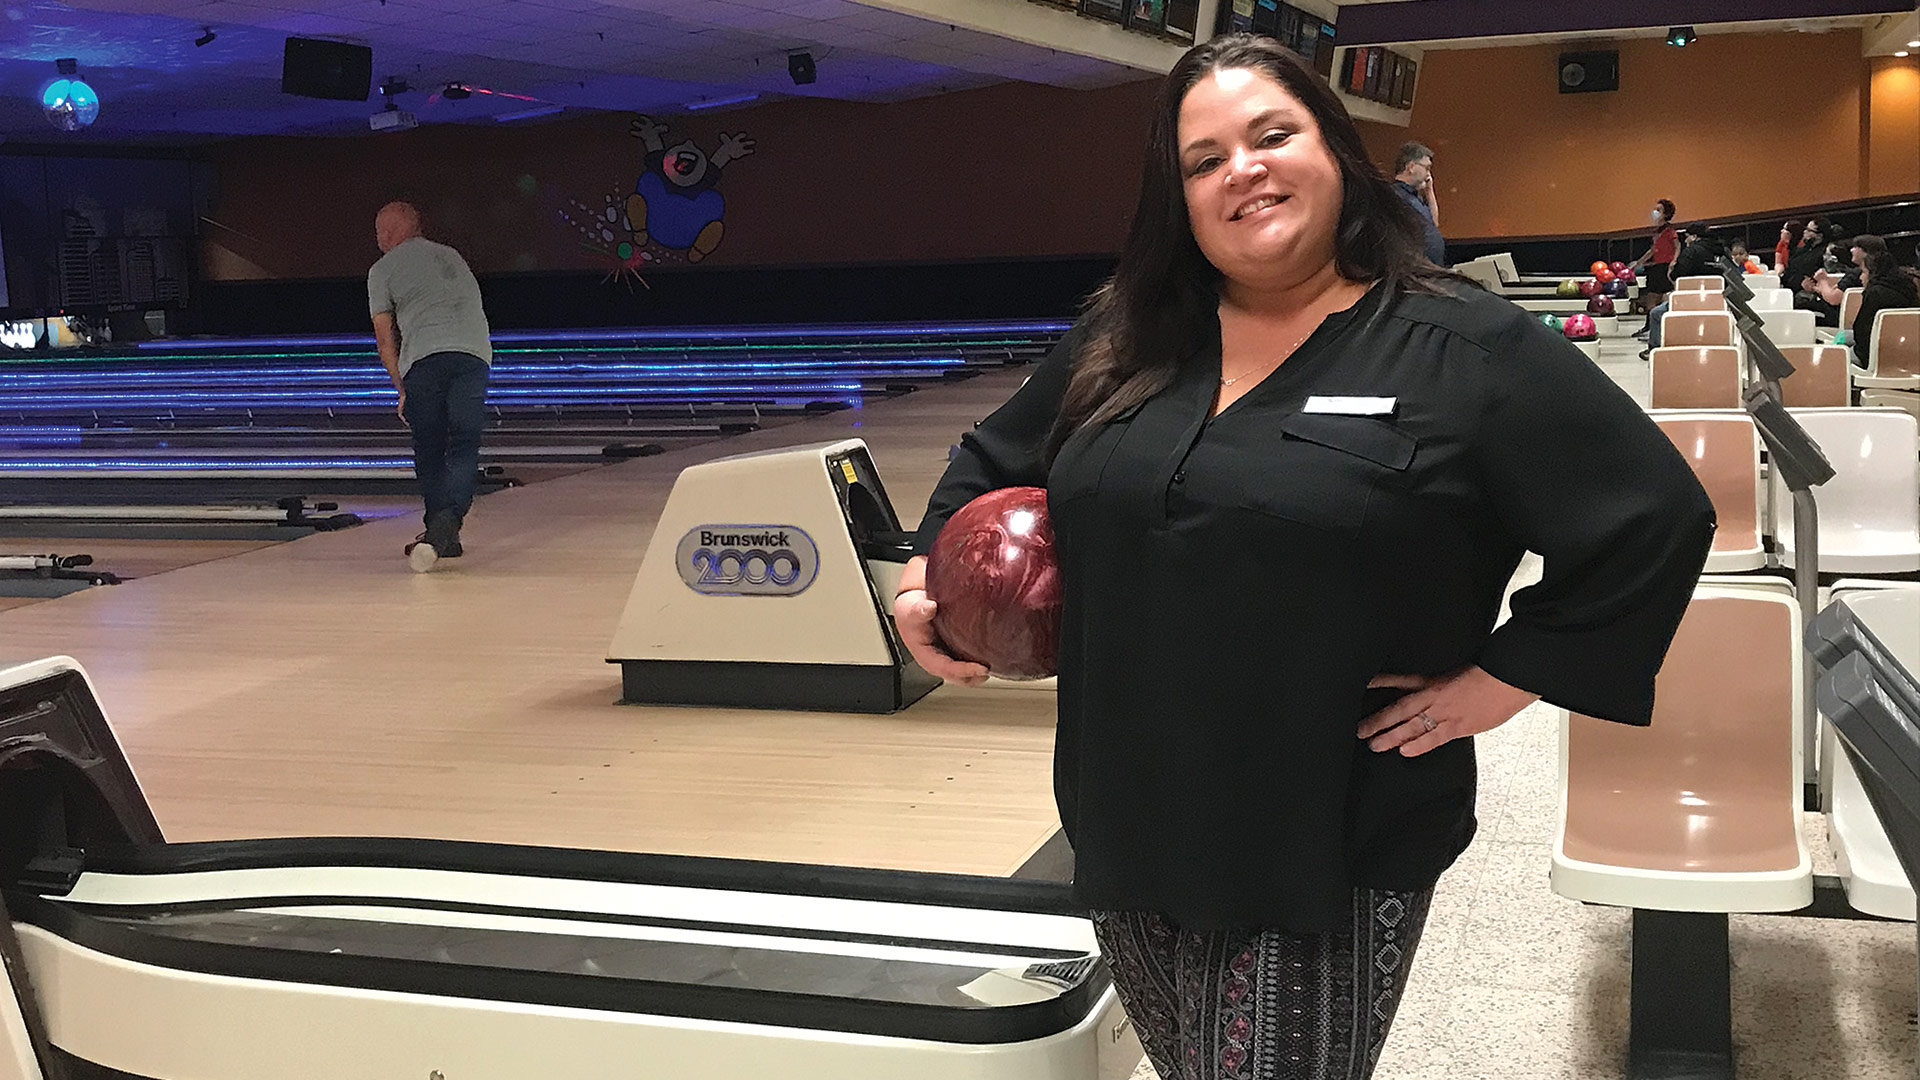 Sarah Blais says it's good to hear activity again at Spare Time Bowling.